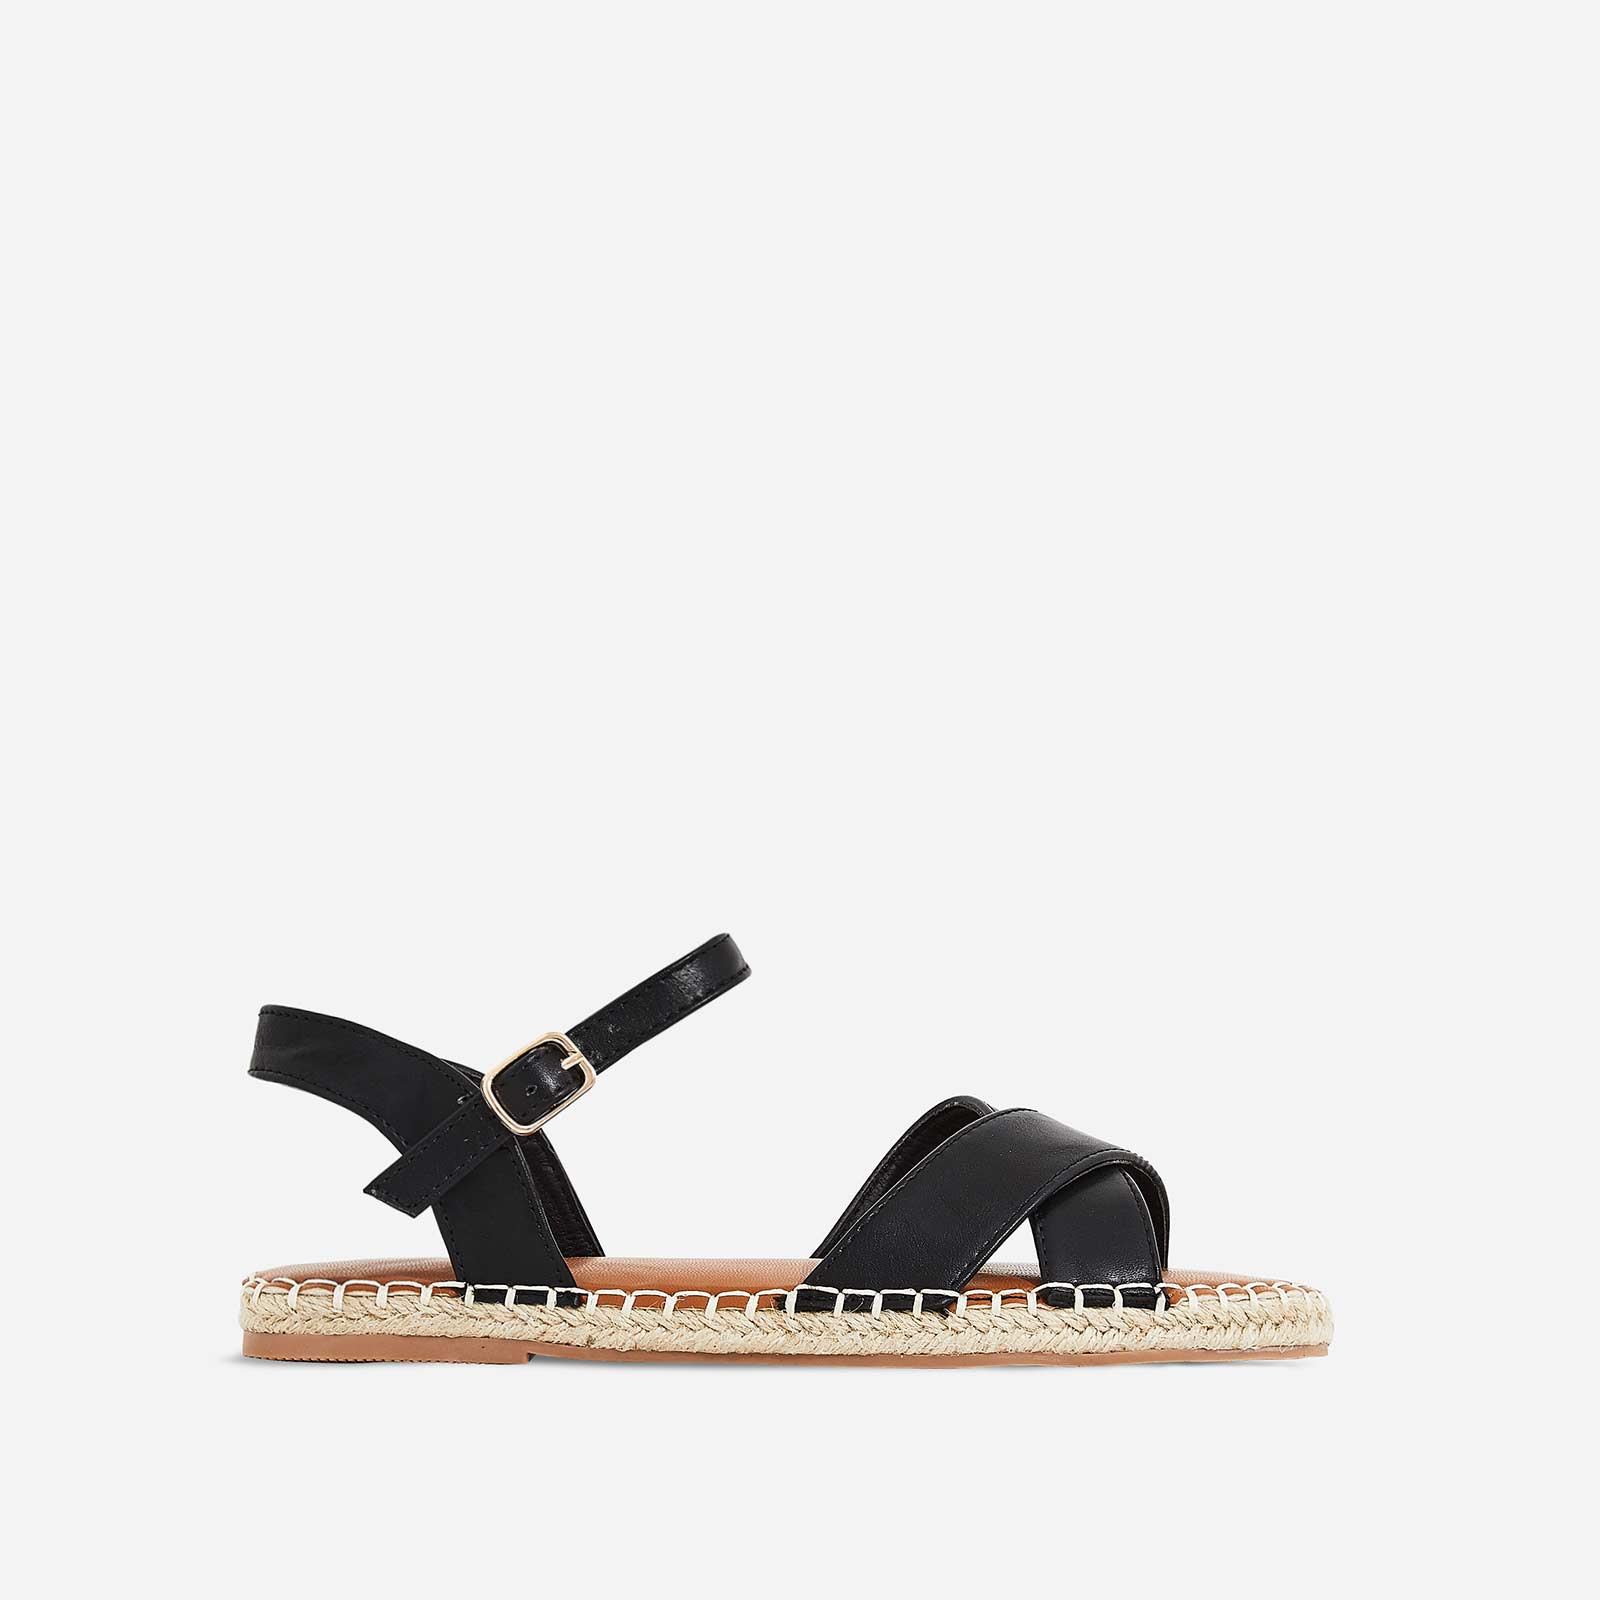 Mirren Espadrille Flat Sandal In Black Faux Leather